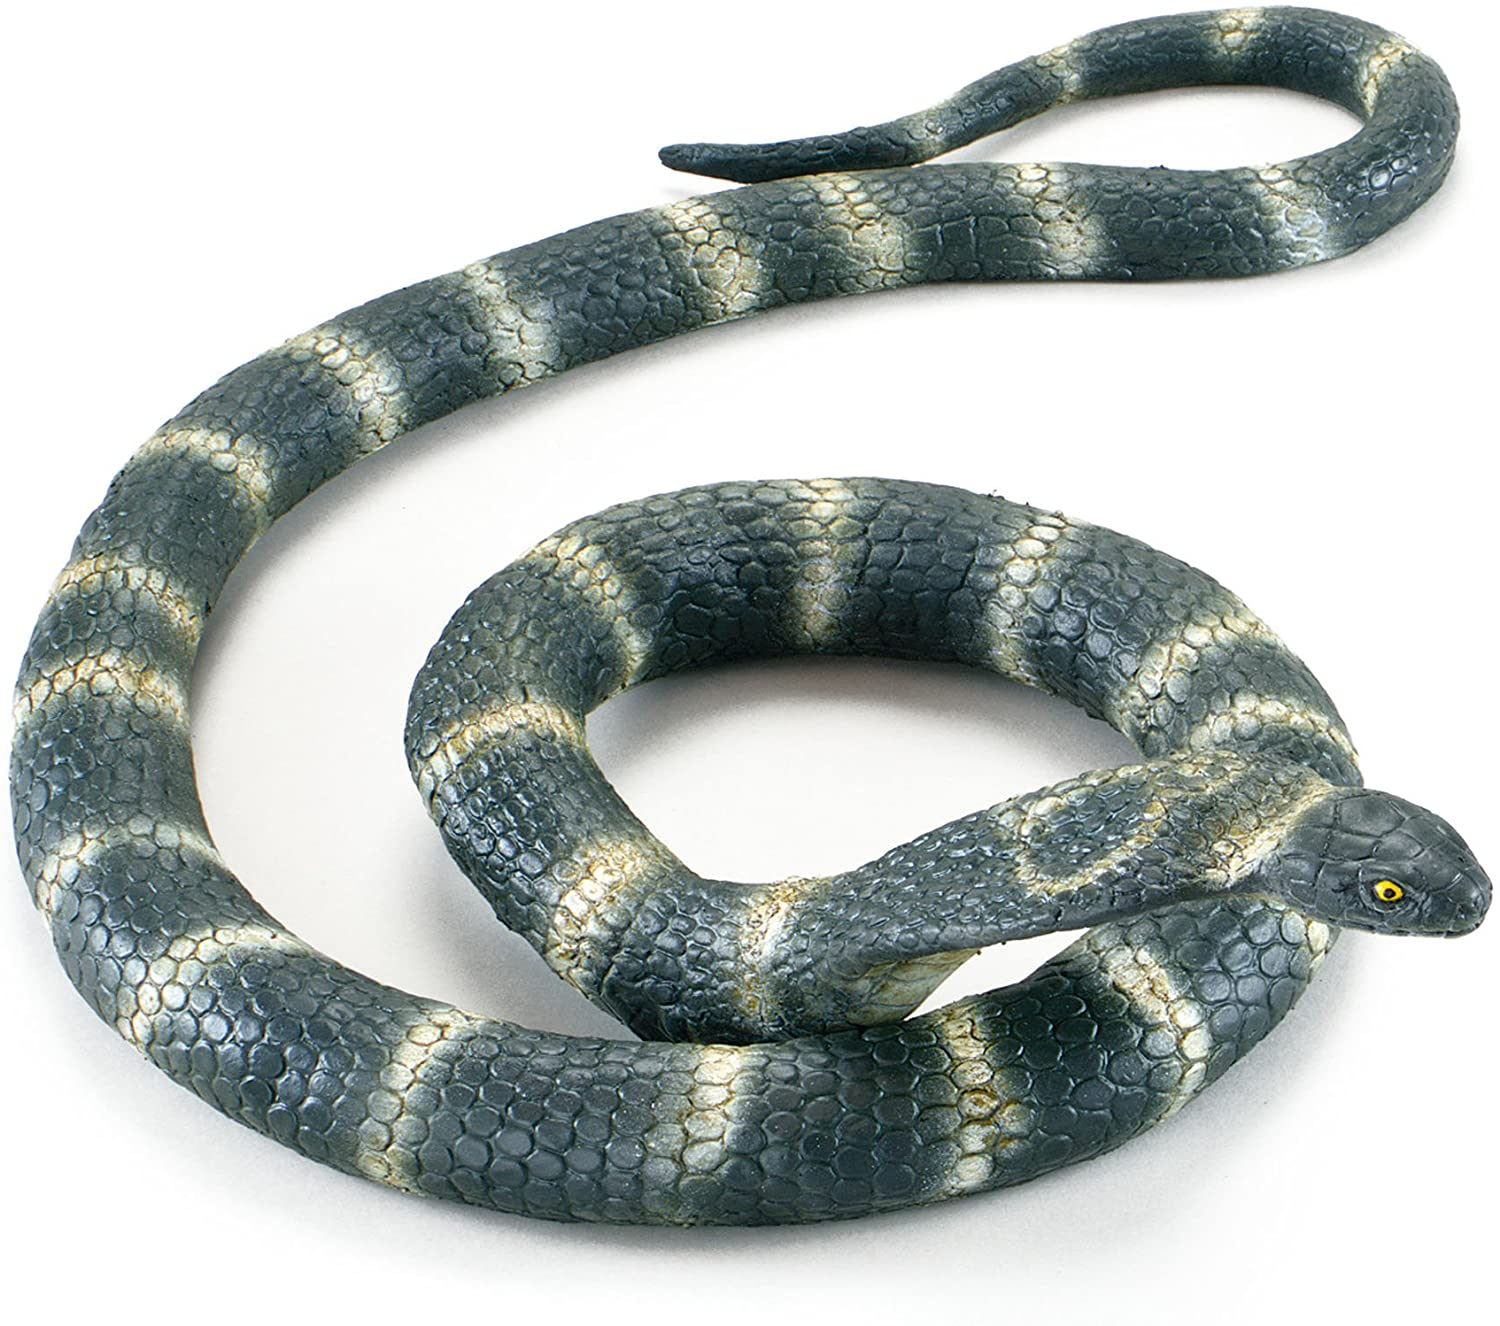 Bristol Novelty AK039 Cobra Snake Rubber Bendable Prop